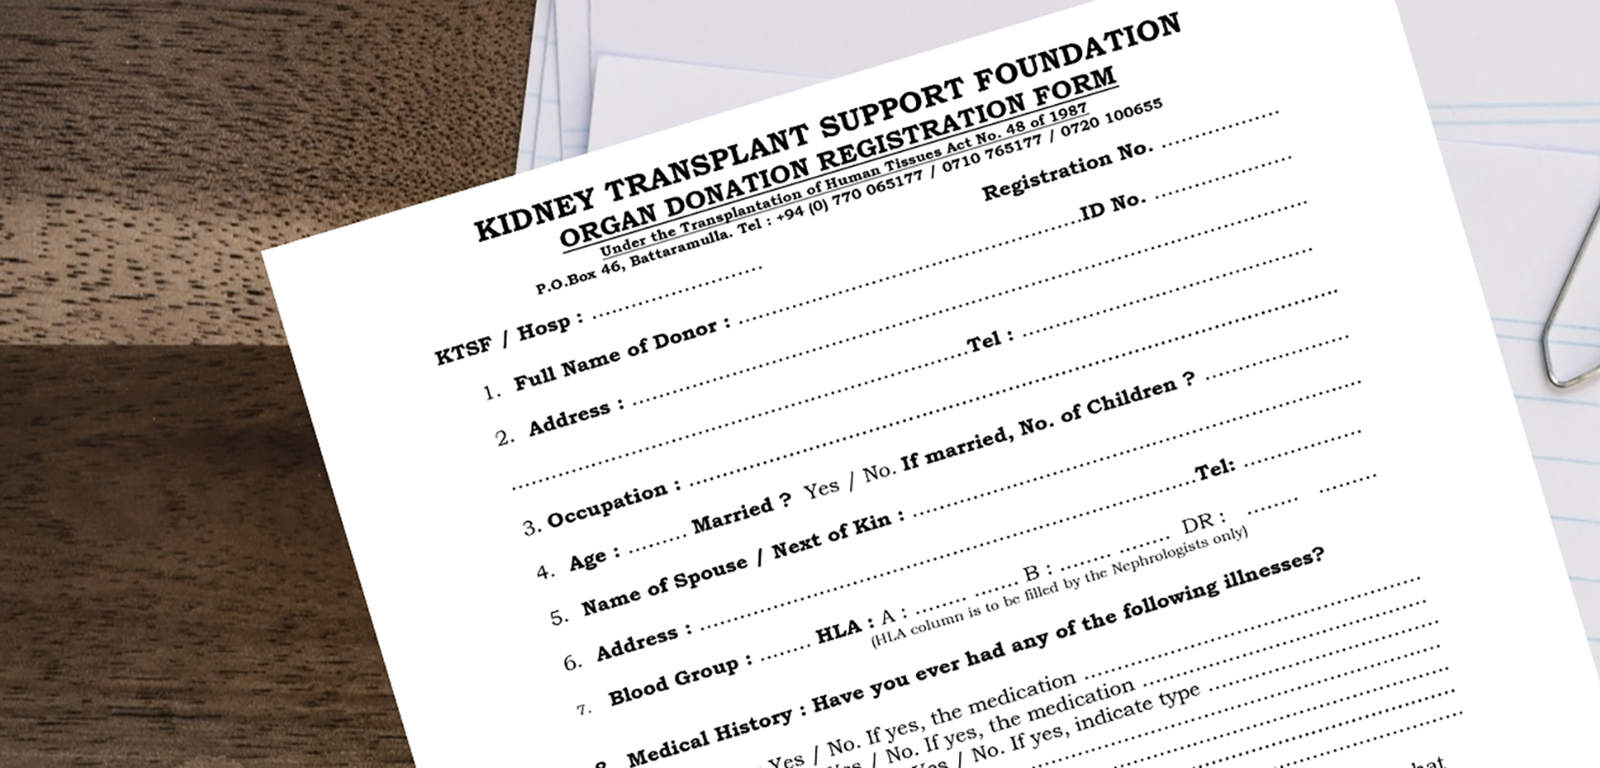 Live Donations : Kidney Transplant Support Foundation